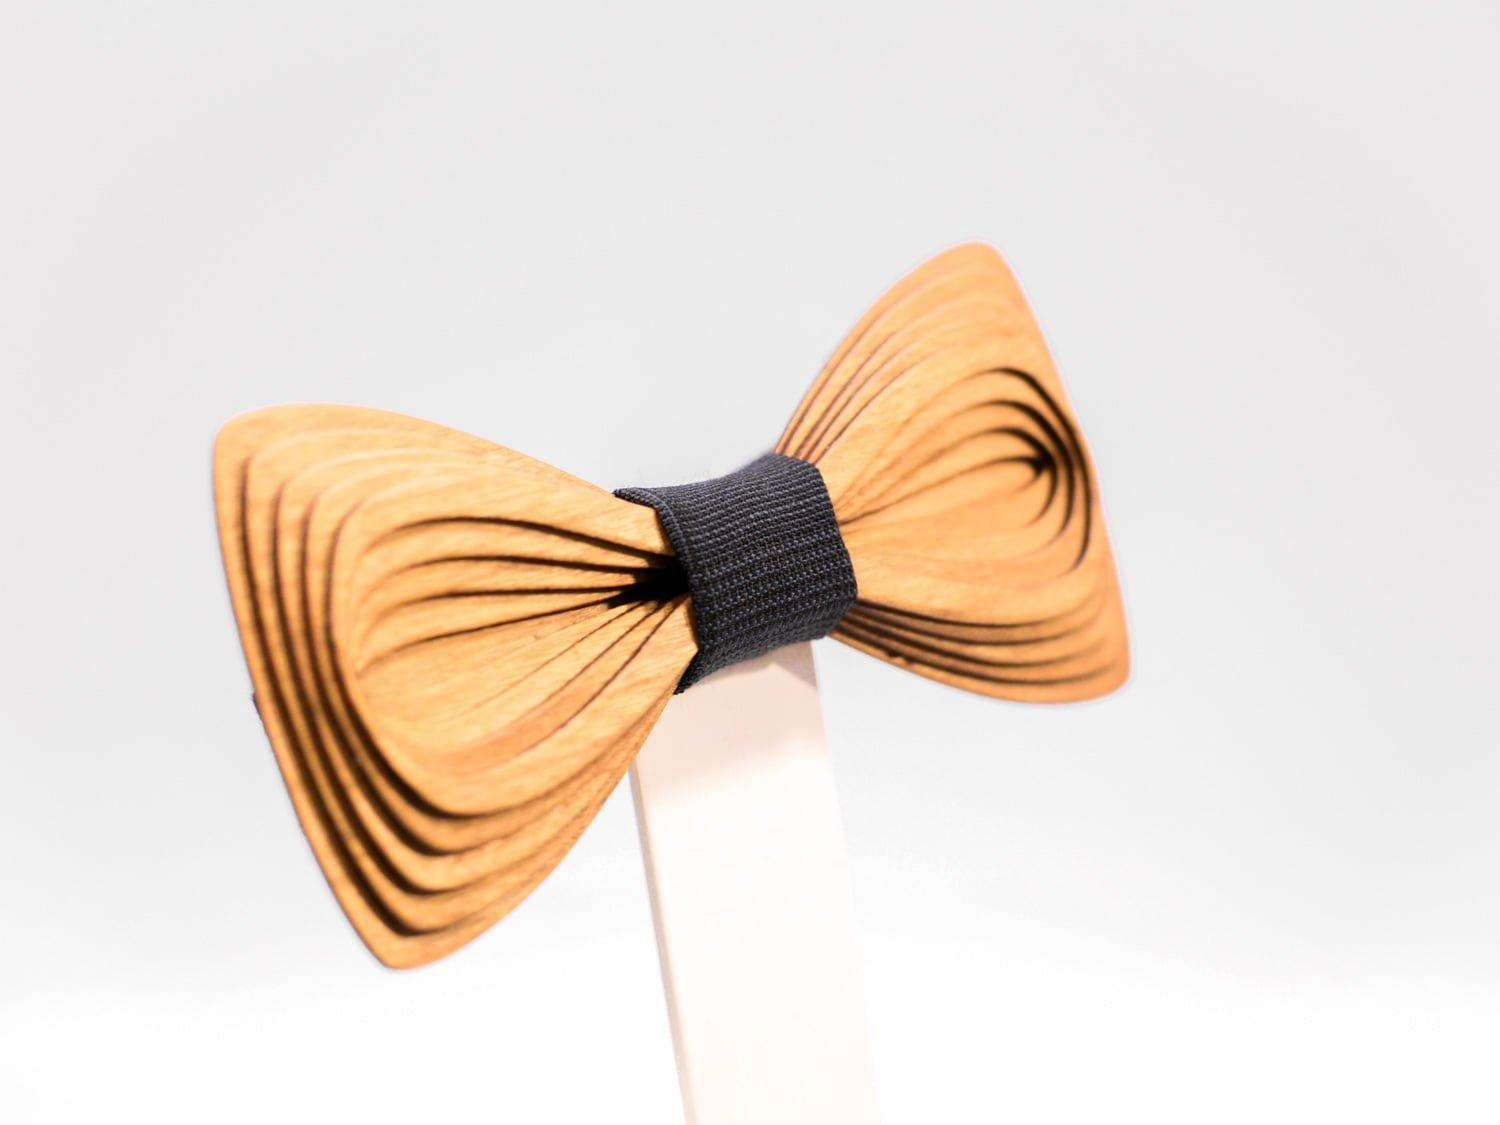 SÖÖR Antero neckwear in cherry. A unique wooden bowtie for men by Hermandia, handcrafted in Finland.